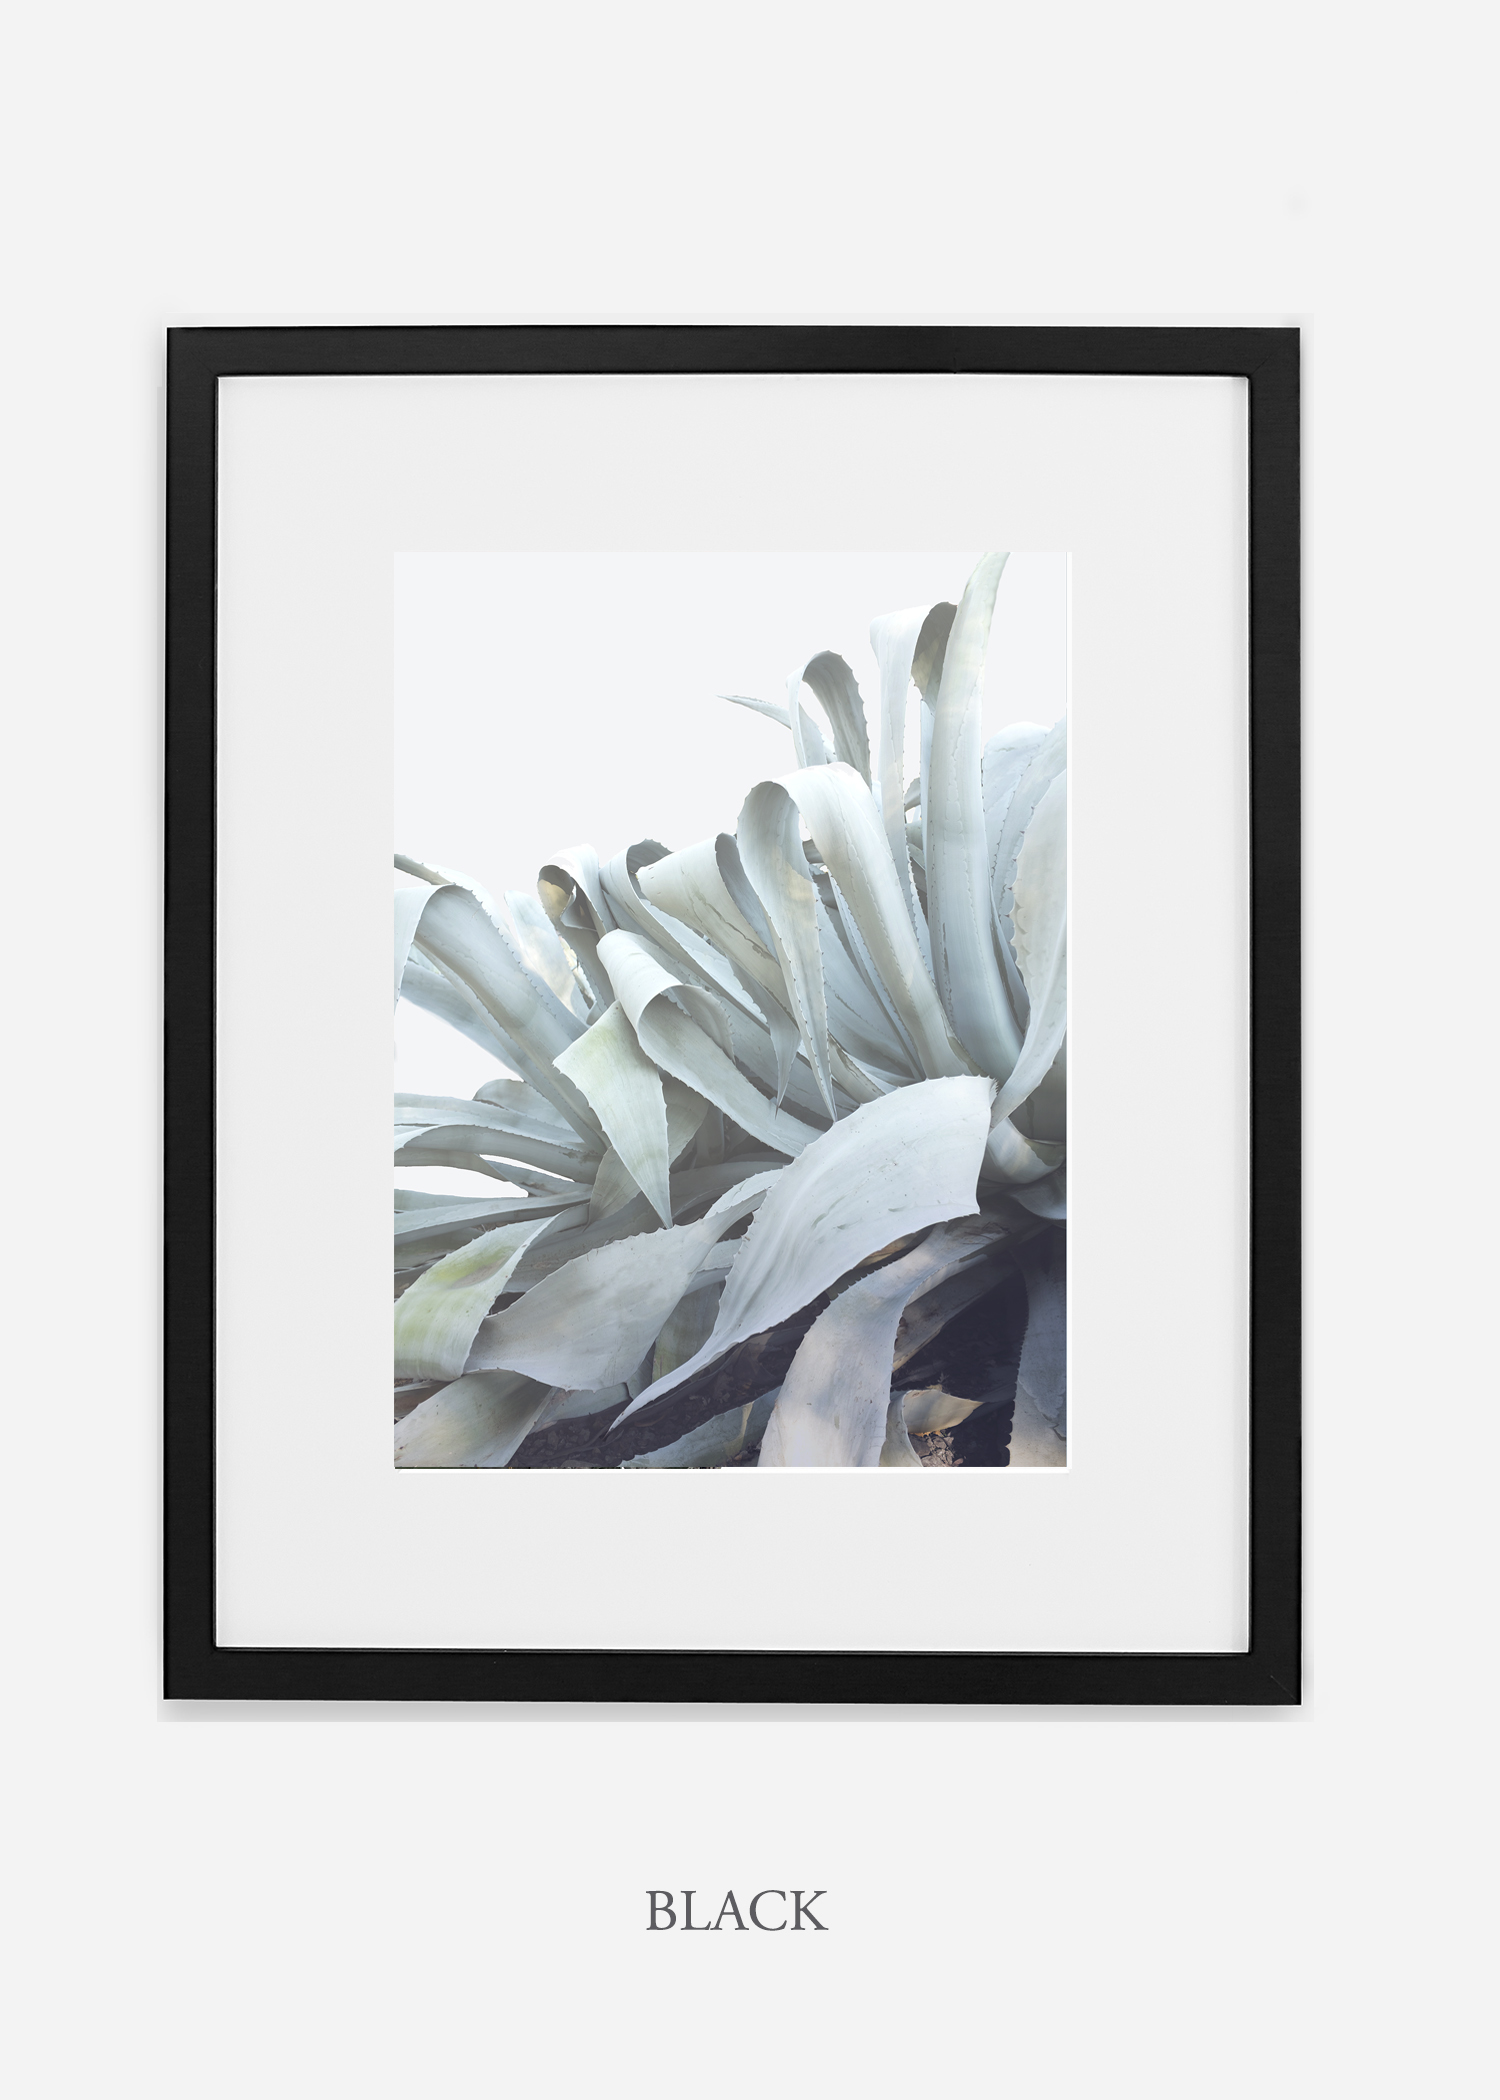 wildercalifornia_blackframe_WinterWhite_AgaveNo.2_Desert_LosAngeles_Art_HomeDecor_interiordesign_design.jpg